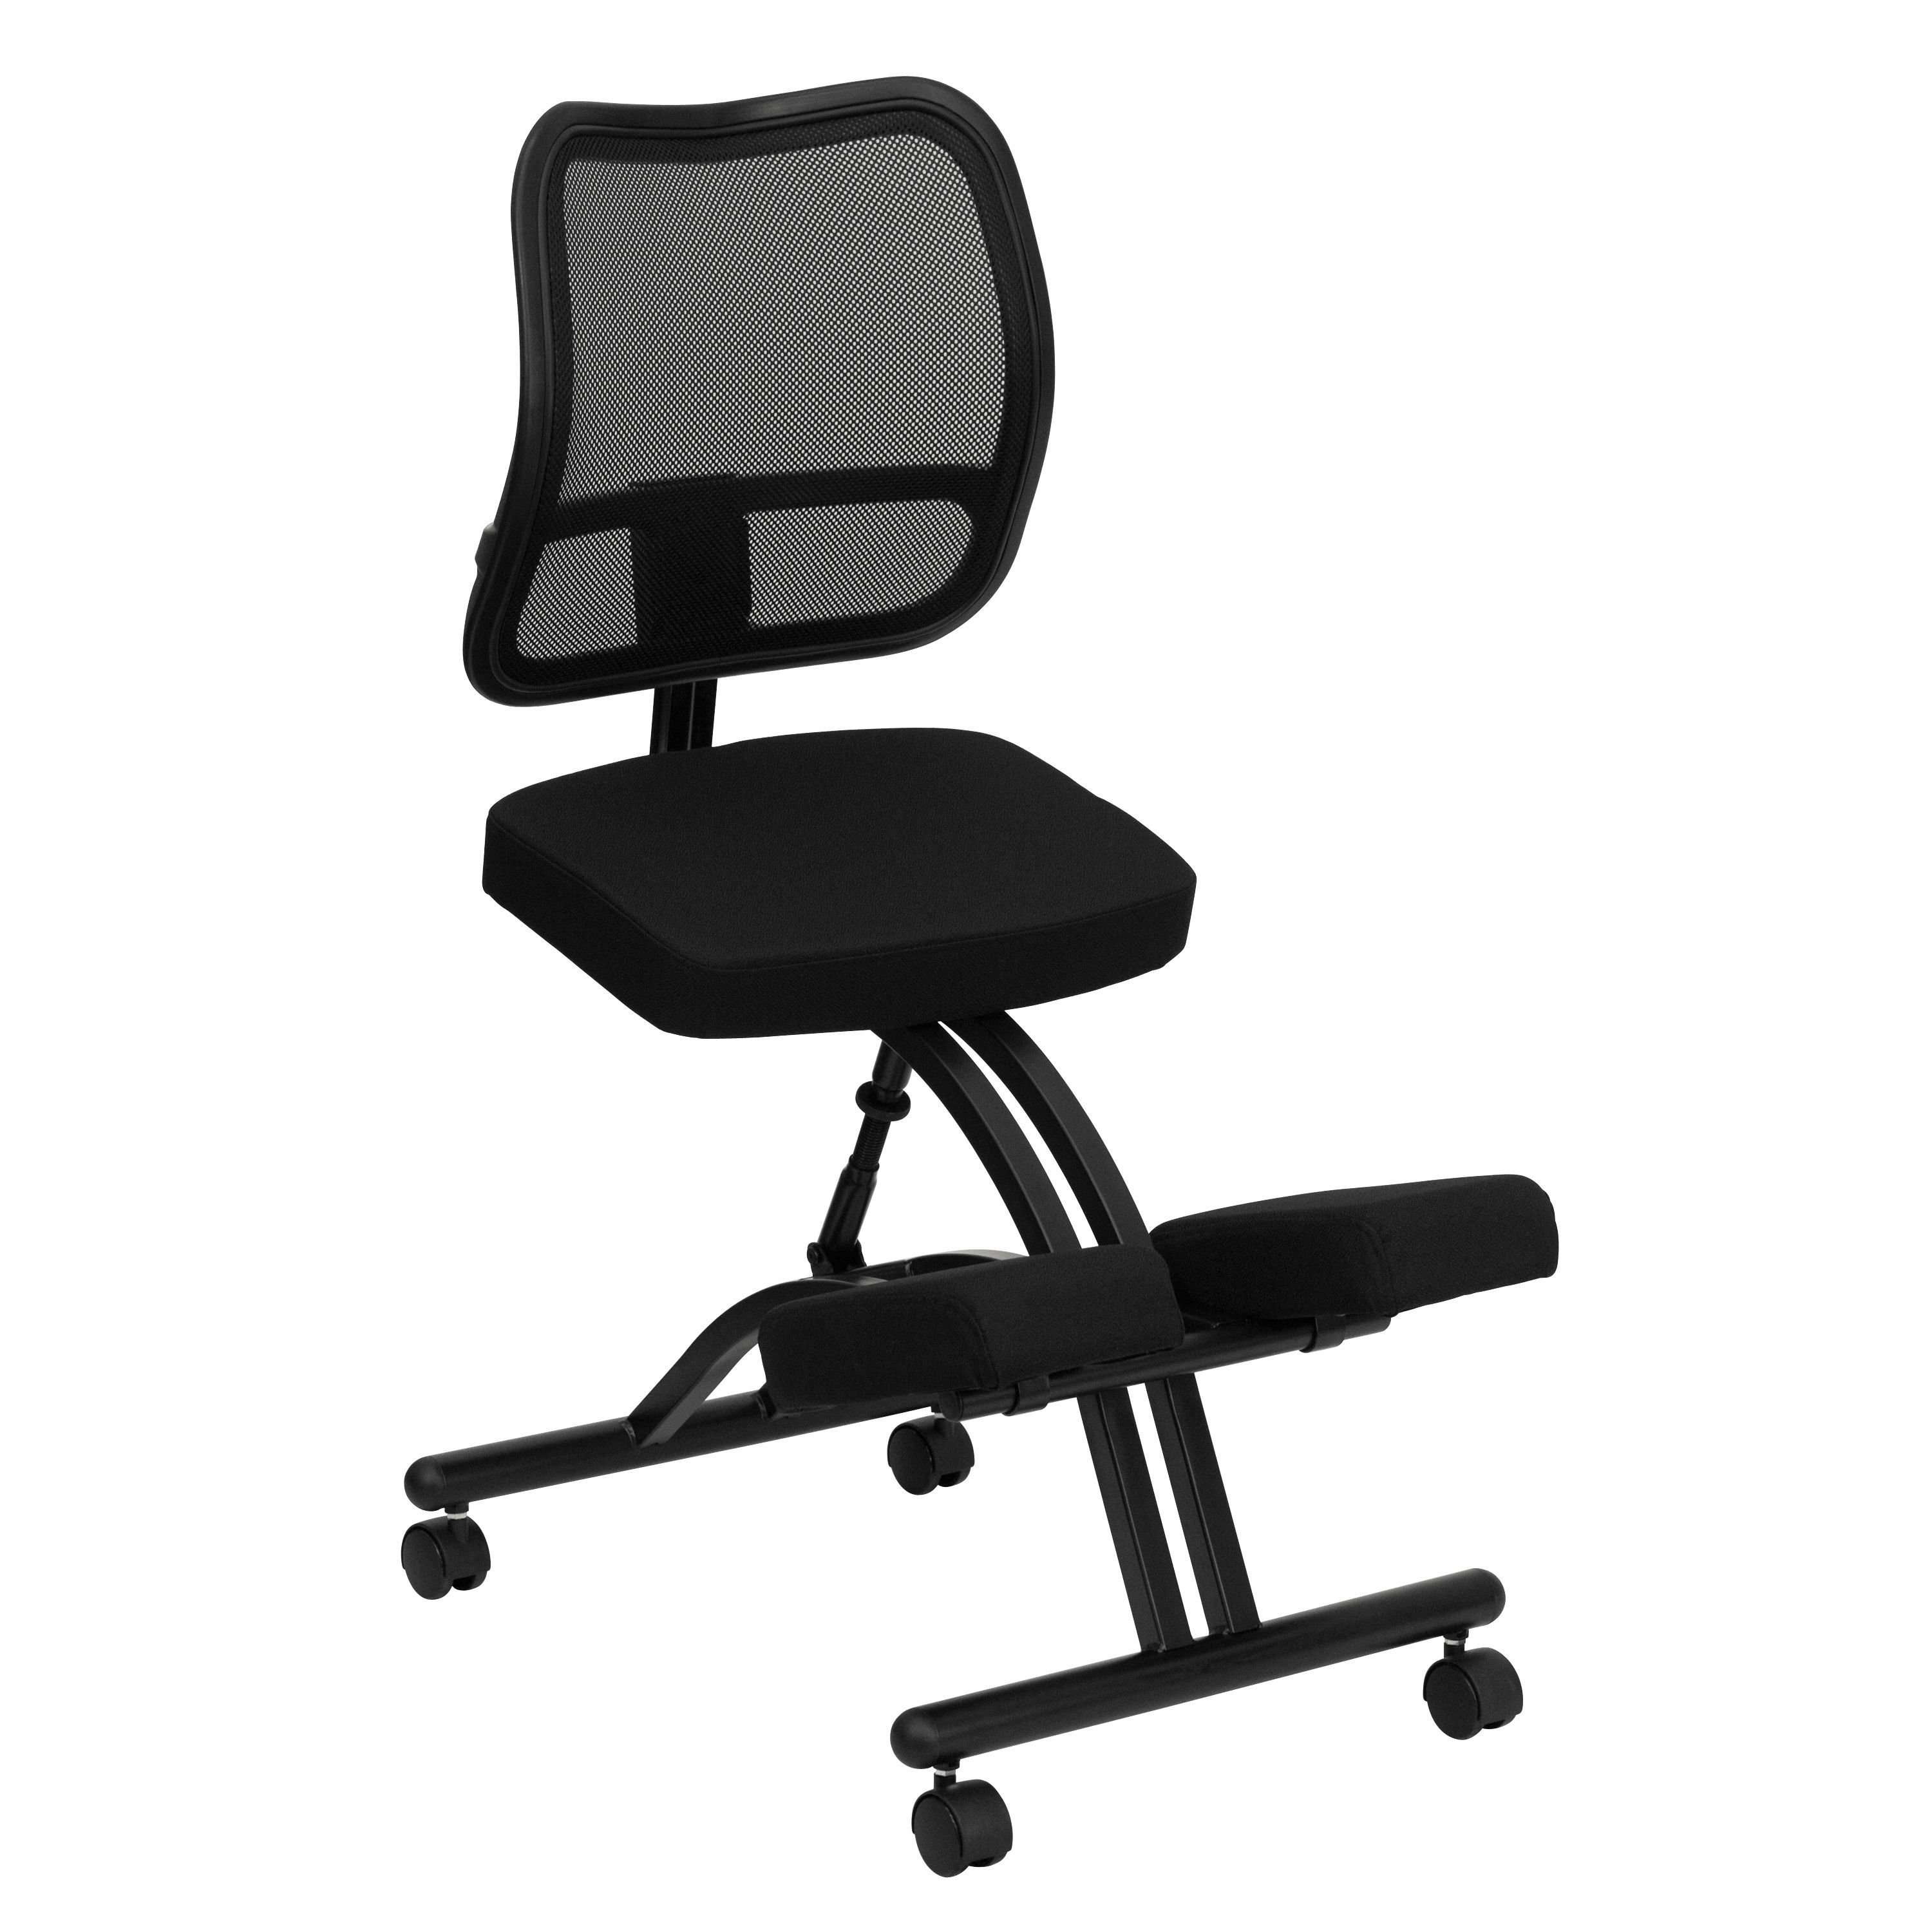 ergonomic kneeling office chairs. Regain Your Body\u0027s Natural Posture With This Ergonomic Kneeling Chair Included Back. Office Chairs F